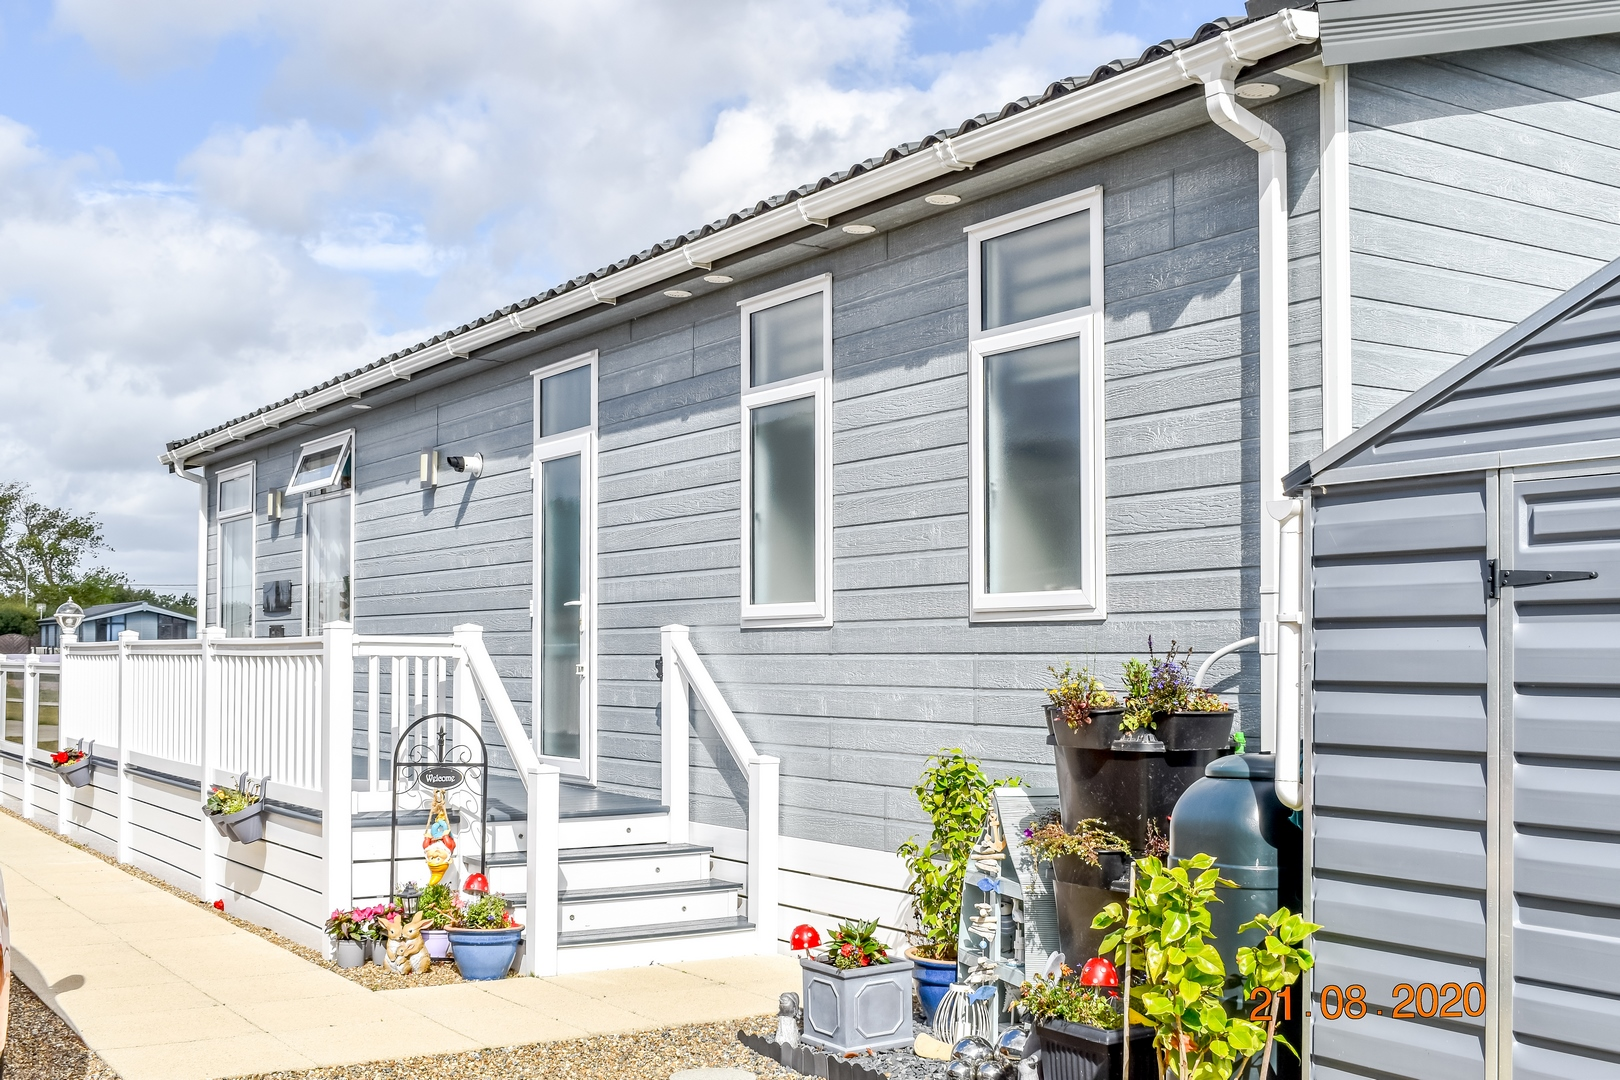 Image 2 of The Hollies Holiday Park, Suffolk